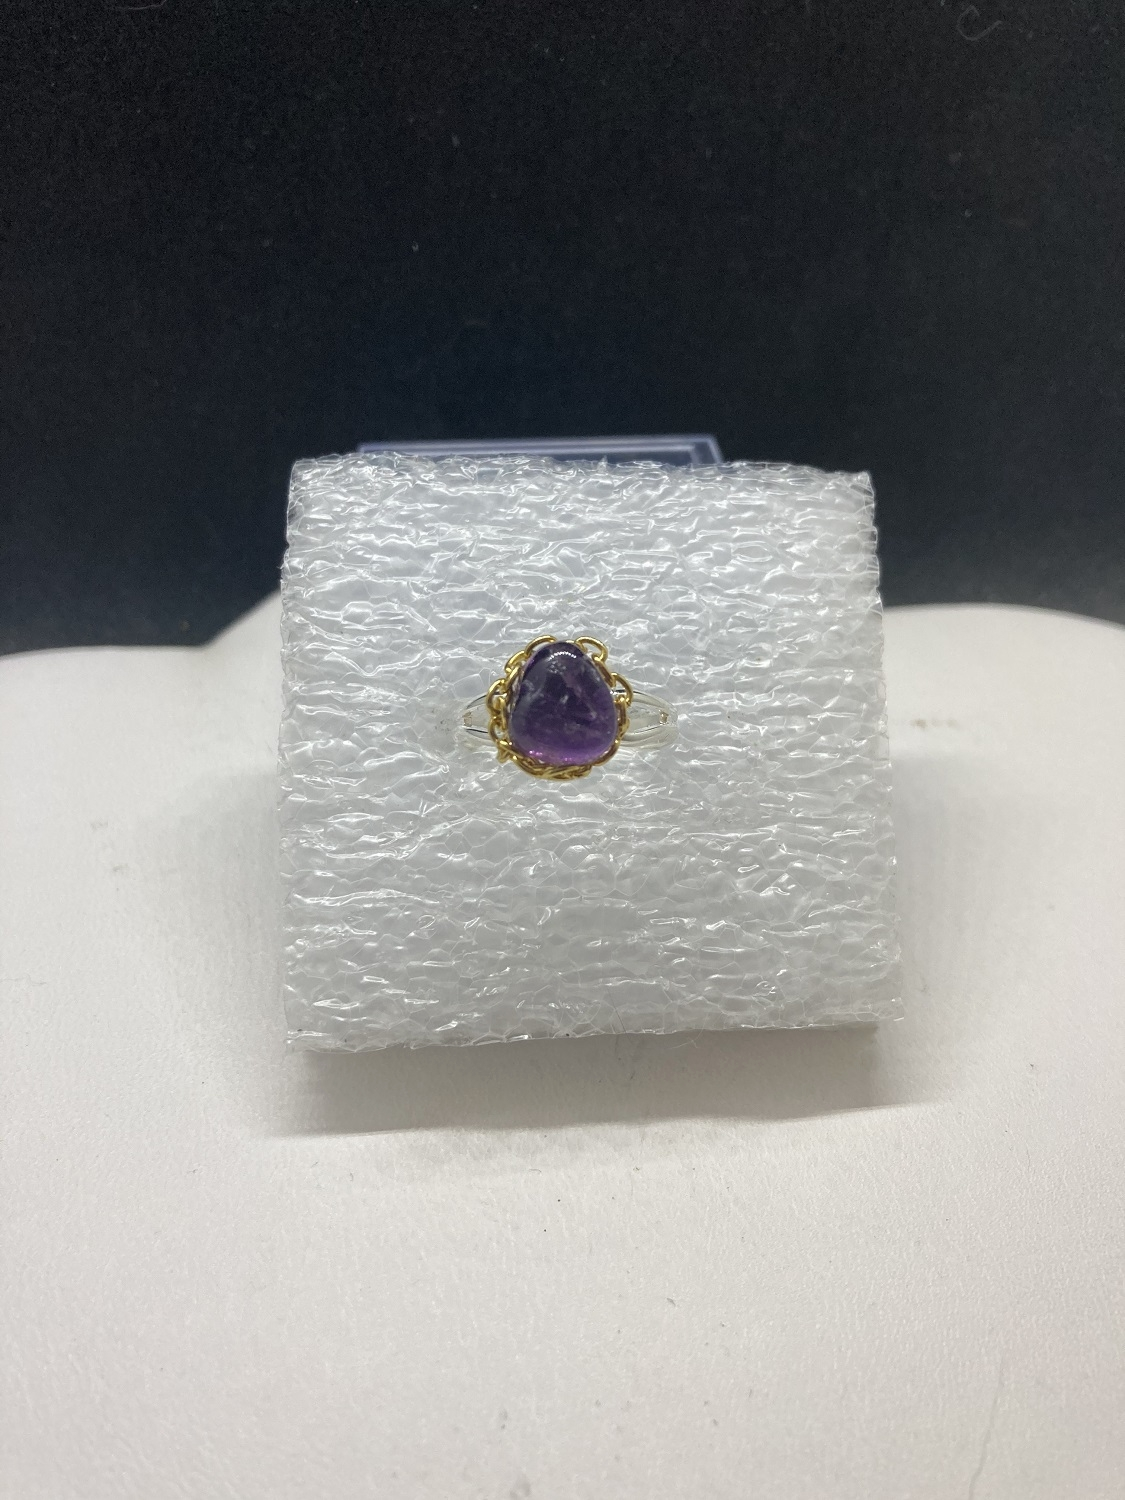 Amethyst Stainless Steel Ring with gold chain